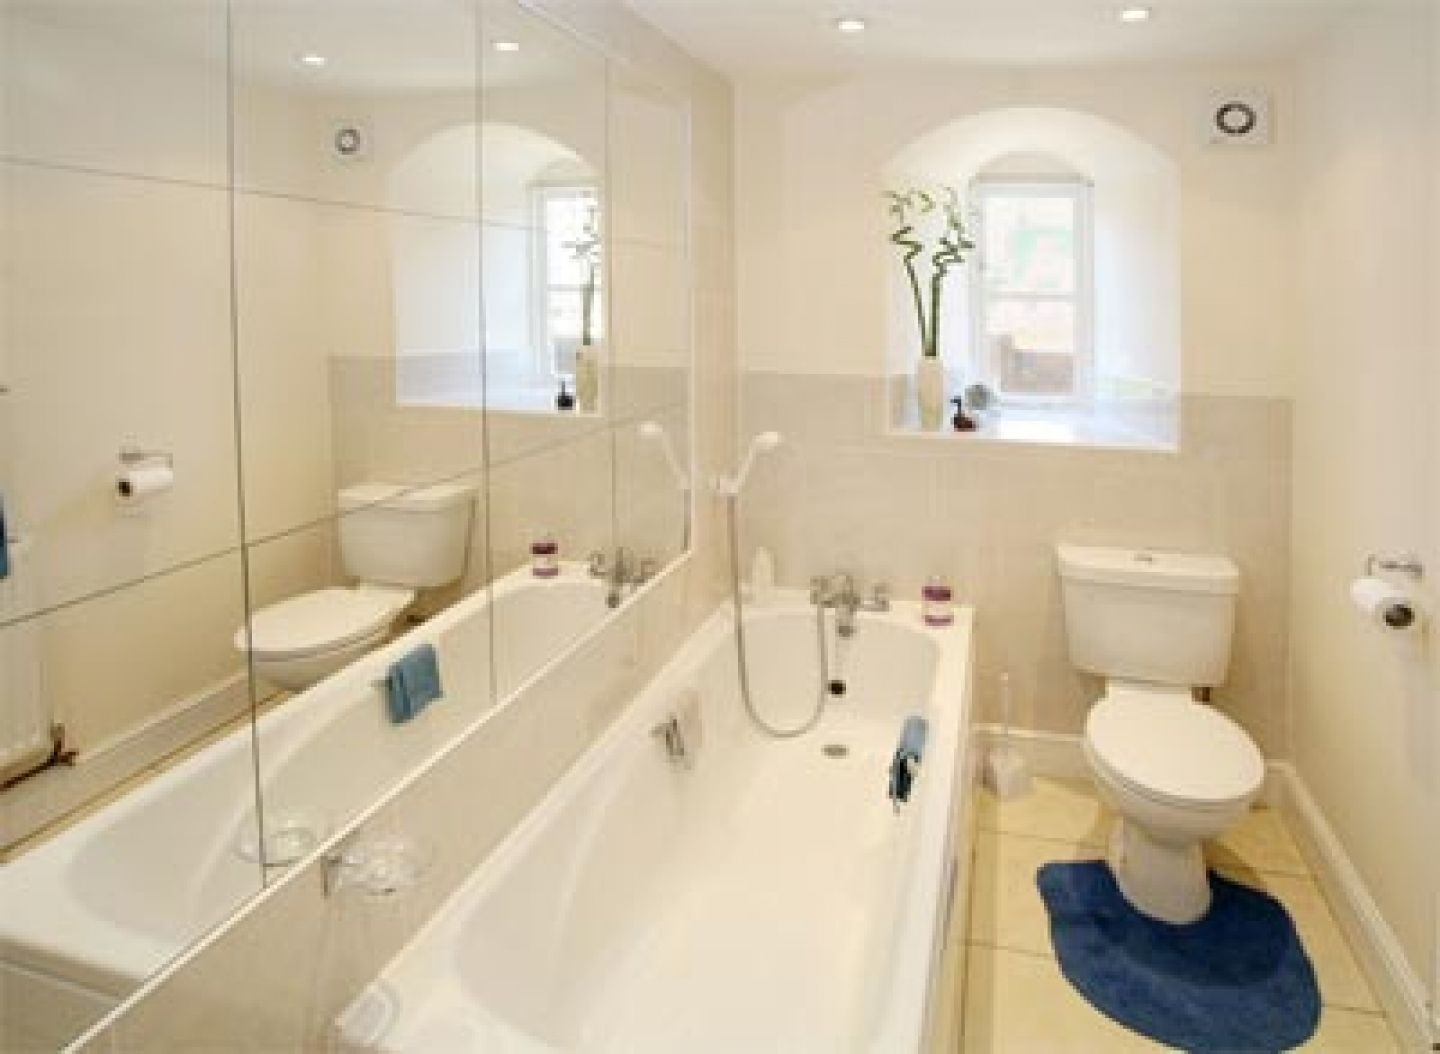 Bathroom Designs Small Space How To Purchase A Beautiful Bathroom Suite On A Shoestring Budget